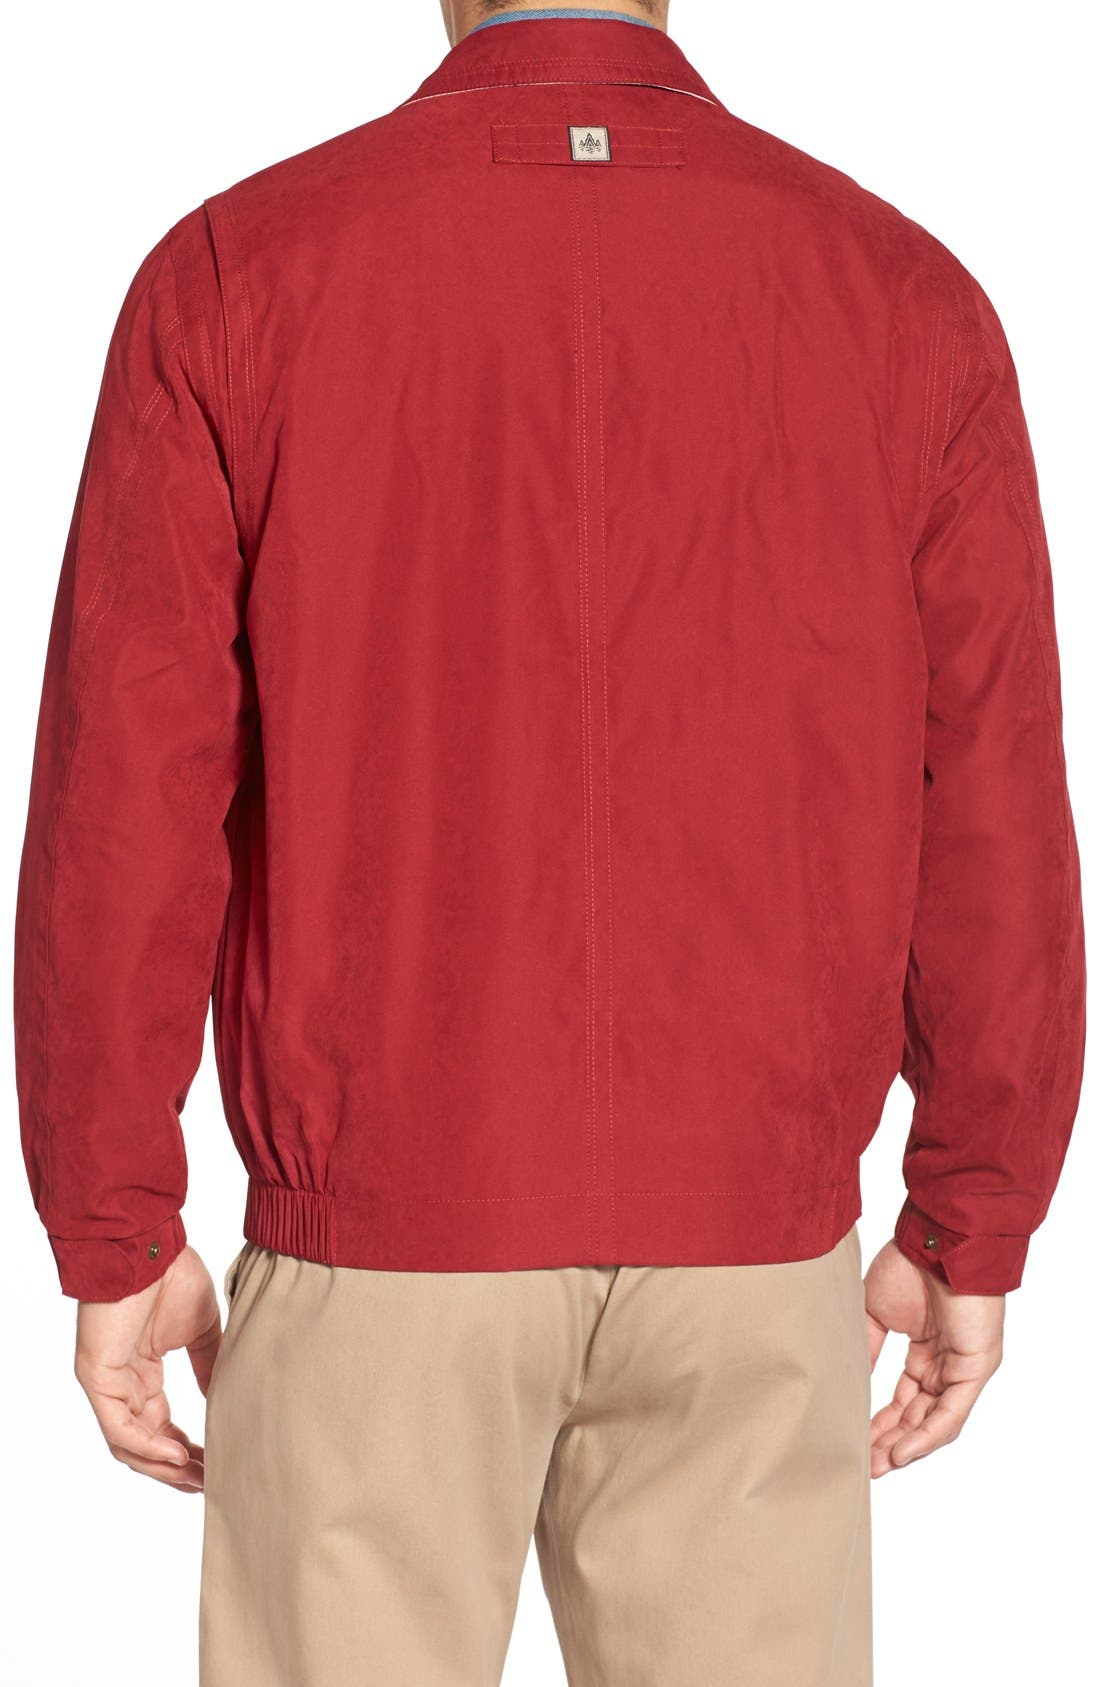 'Microseta' Lightweight Golf Jacket,                             Alternate thumbnail 18, color,